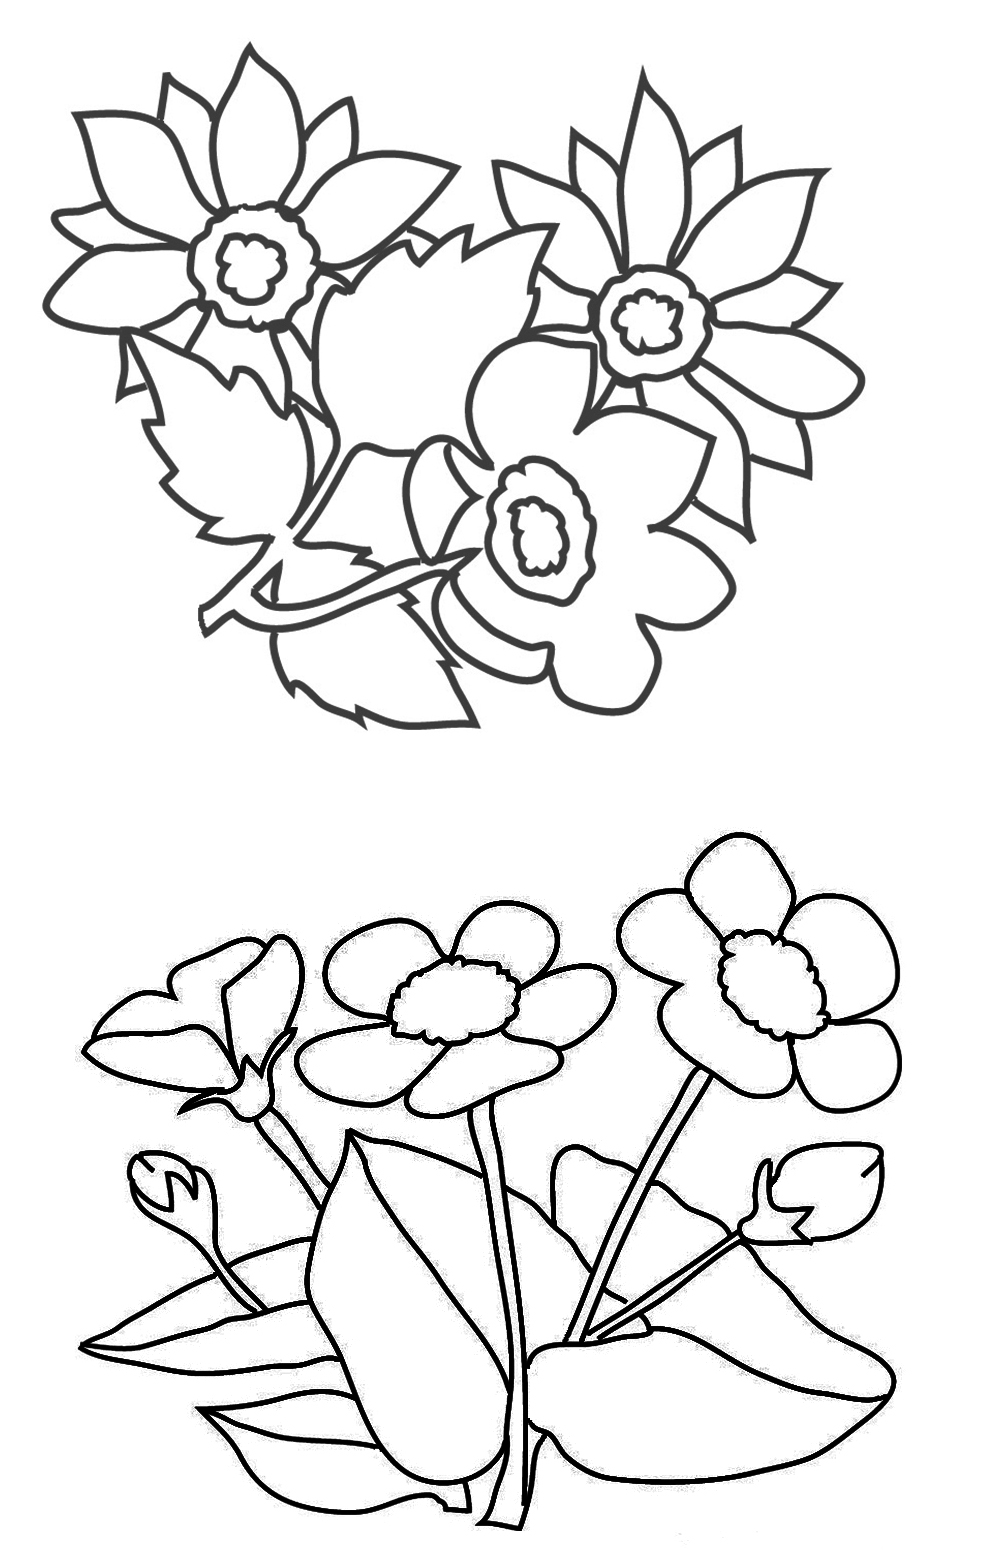 coloring page with buttercups